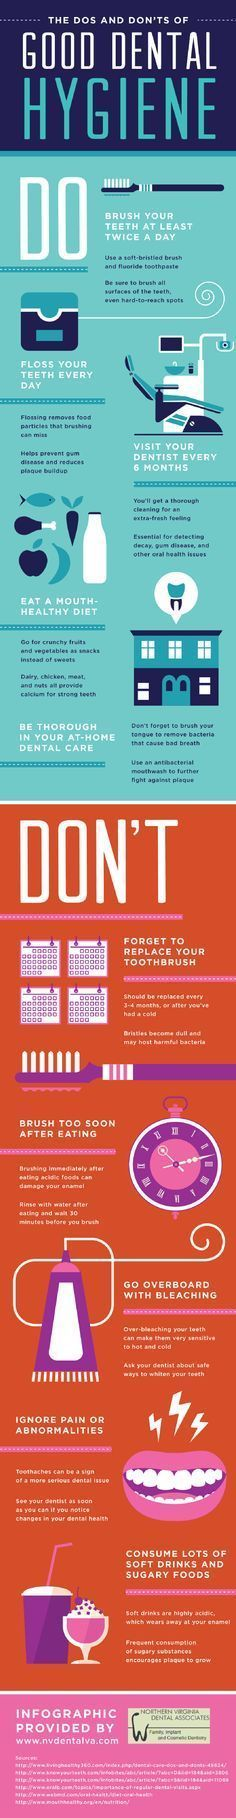 The do's and don'ts of dental care #tips #dentist